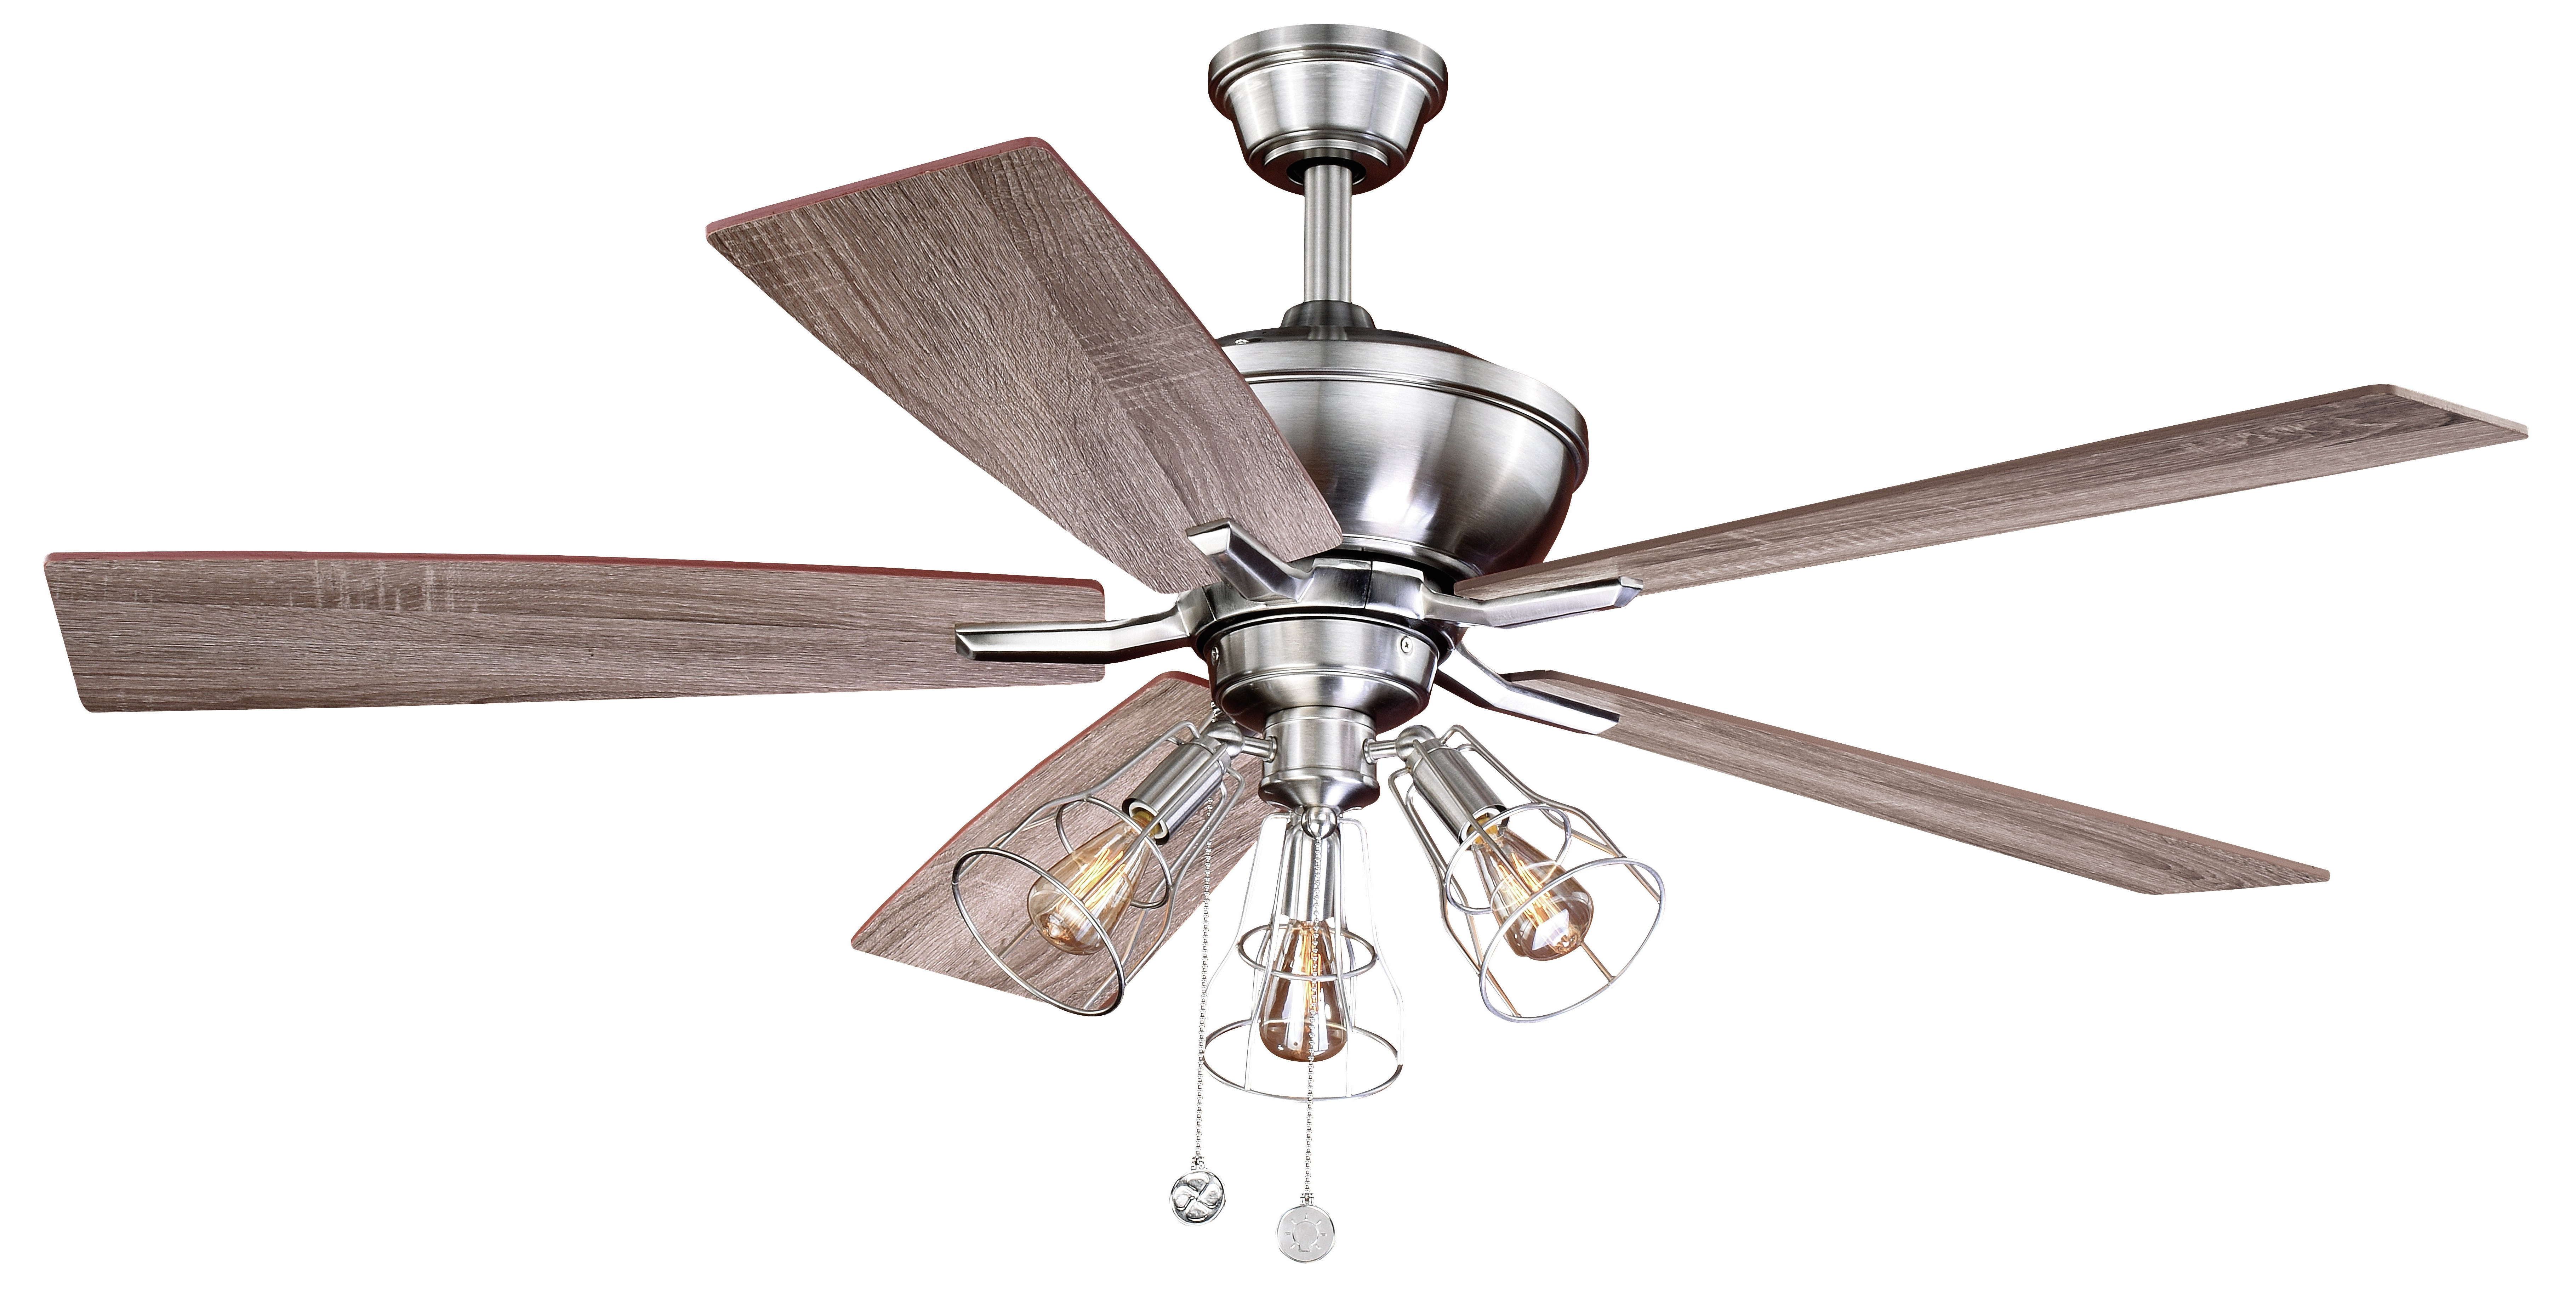 "Clybourn 5 Blade Ceiling Fans For Popular 52"" Clybourn 5 Blade Ceiling Fan (View 2 of 20)"